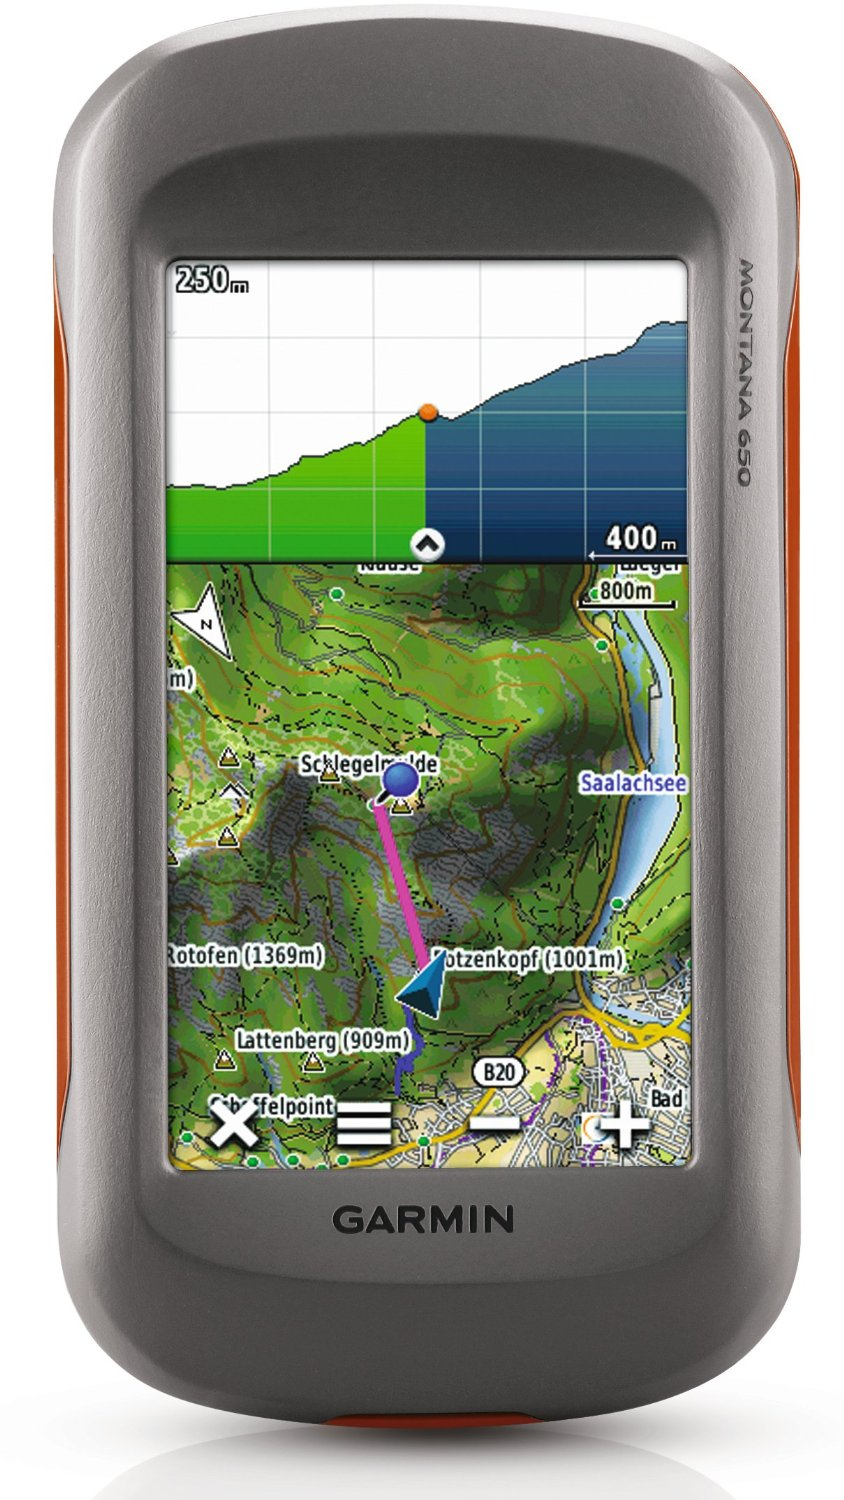 Garmin Montana 650 Outdoor Handheld GPS Unit